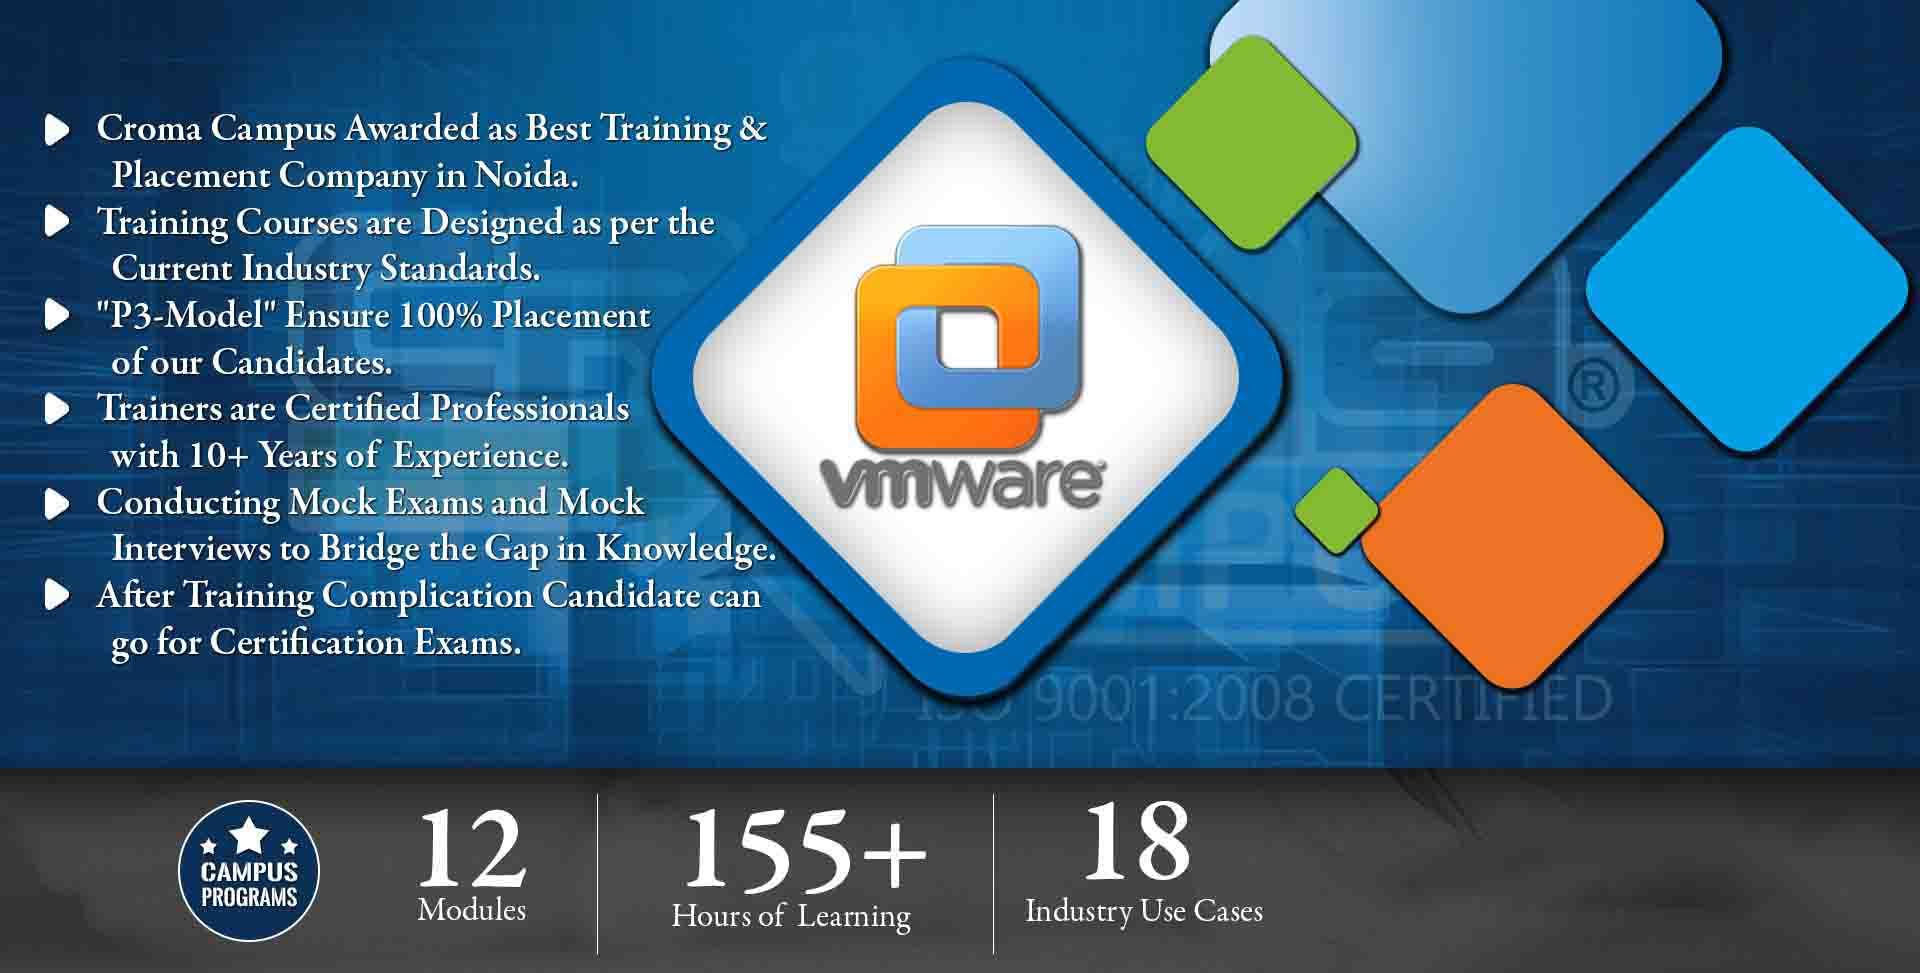 Vmware Training in Noida, Vmware Training Institute in Noida